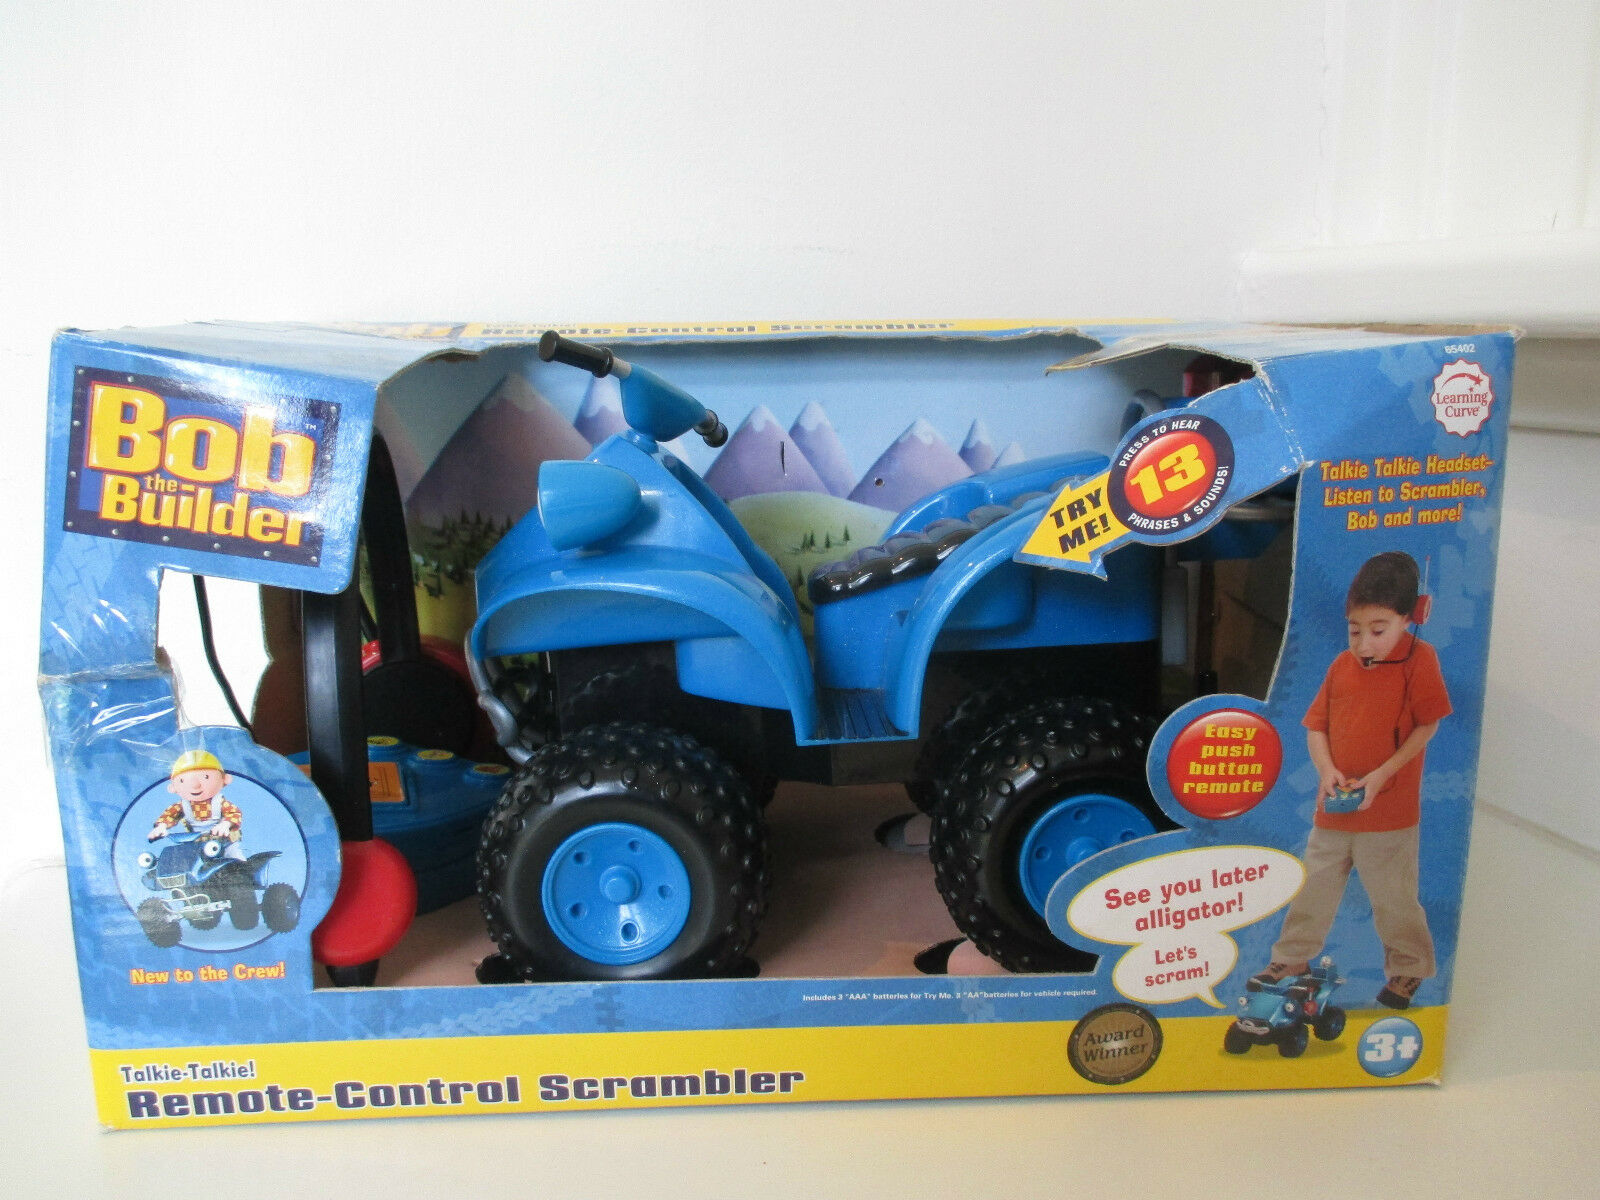 Bob the Builder Remote Control Scrambler with Talkie Talkie Headset - Ages 3+